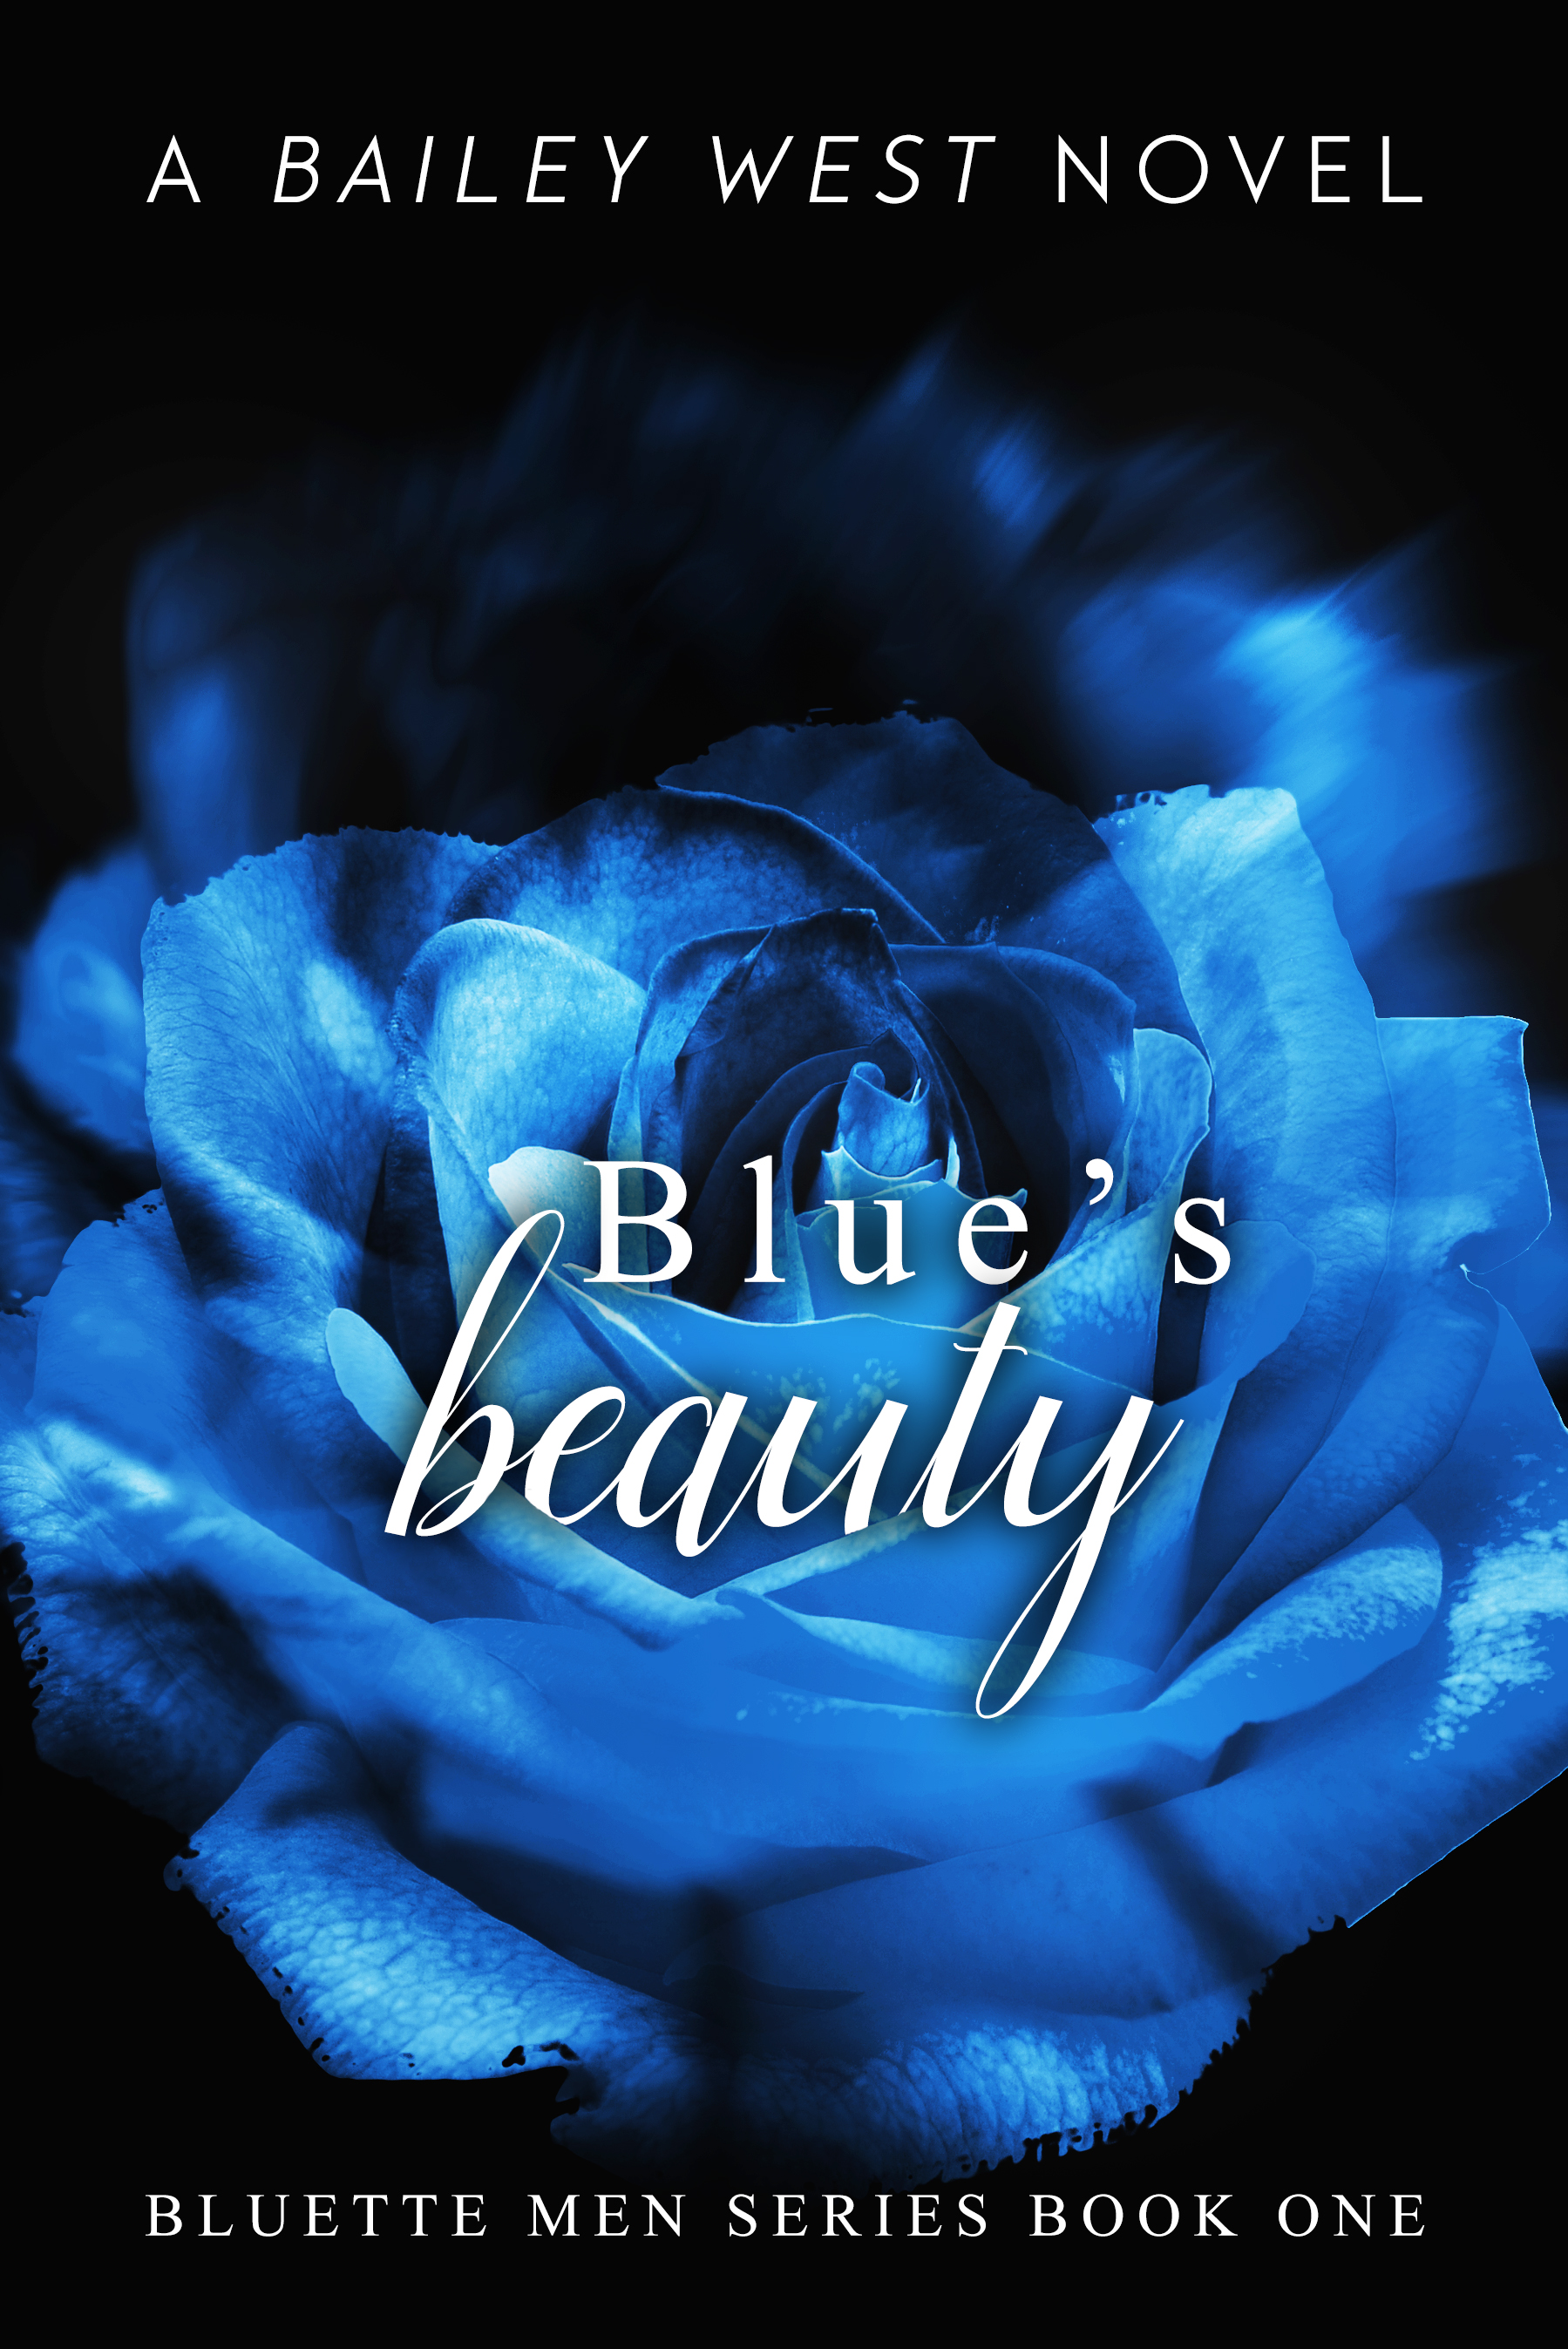 Blue's Beauty by Bailey West